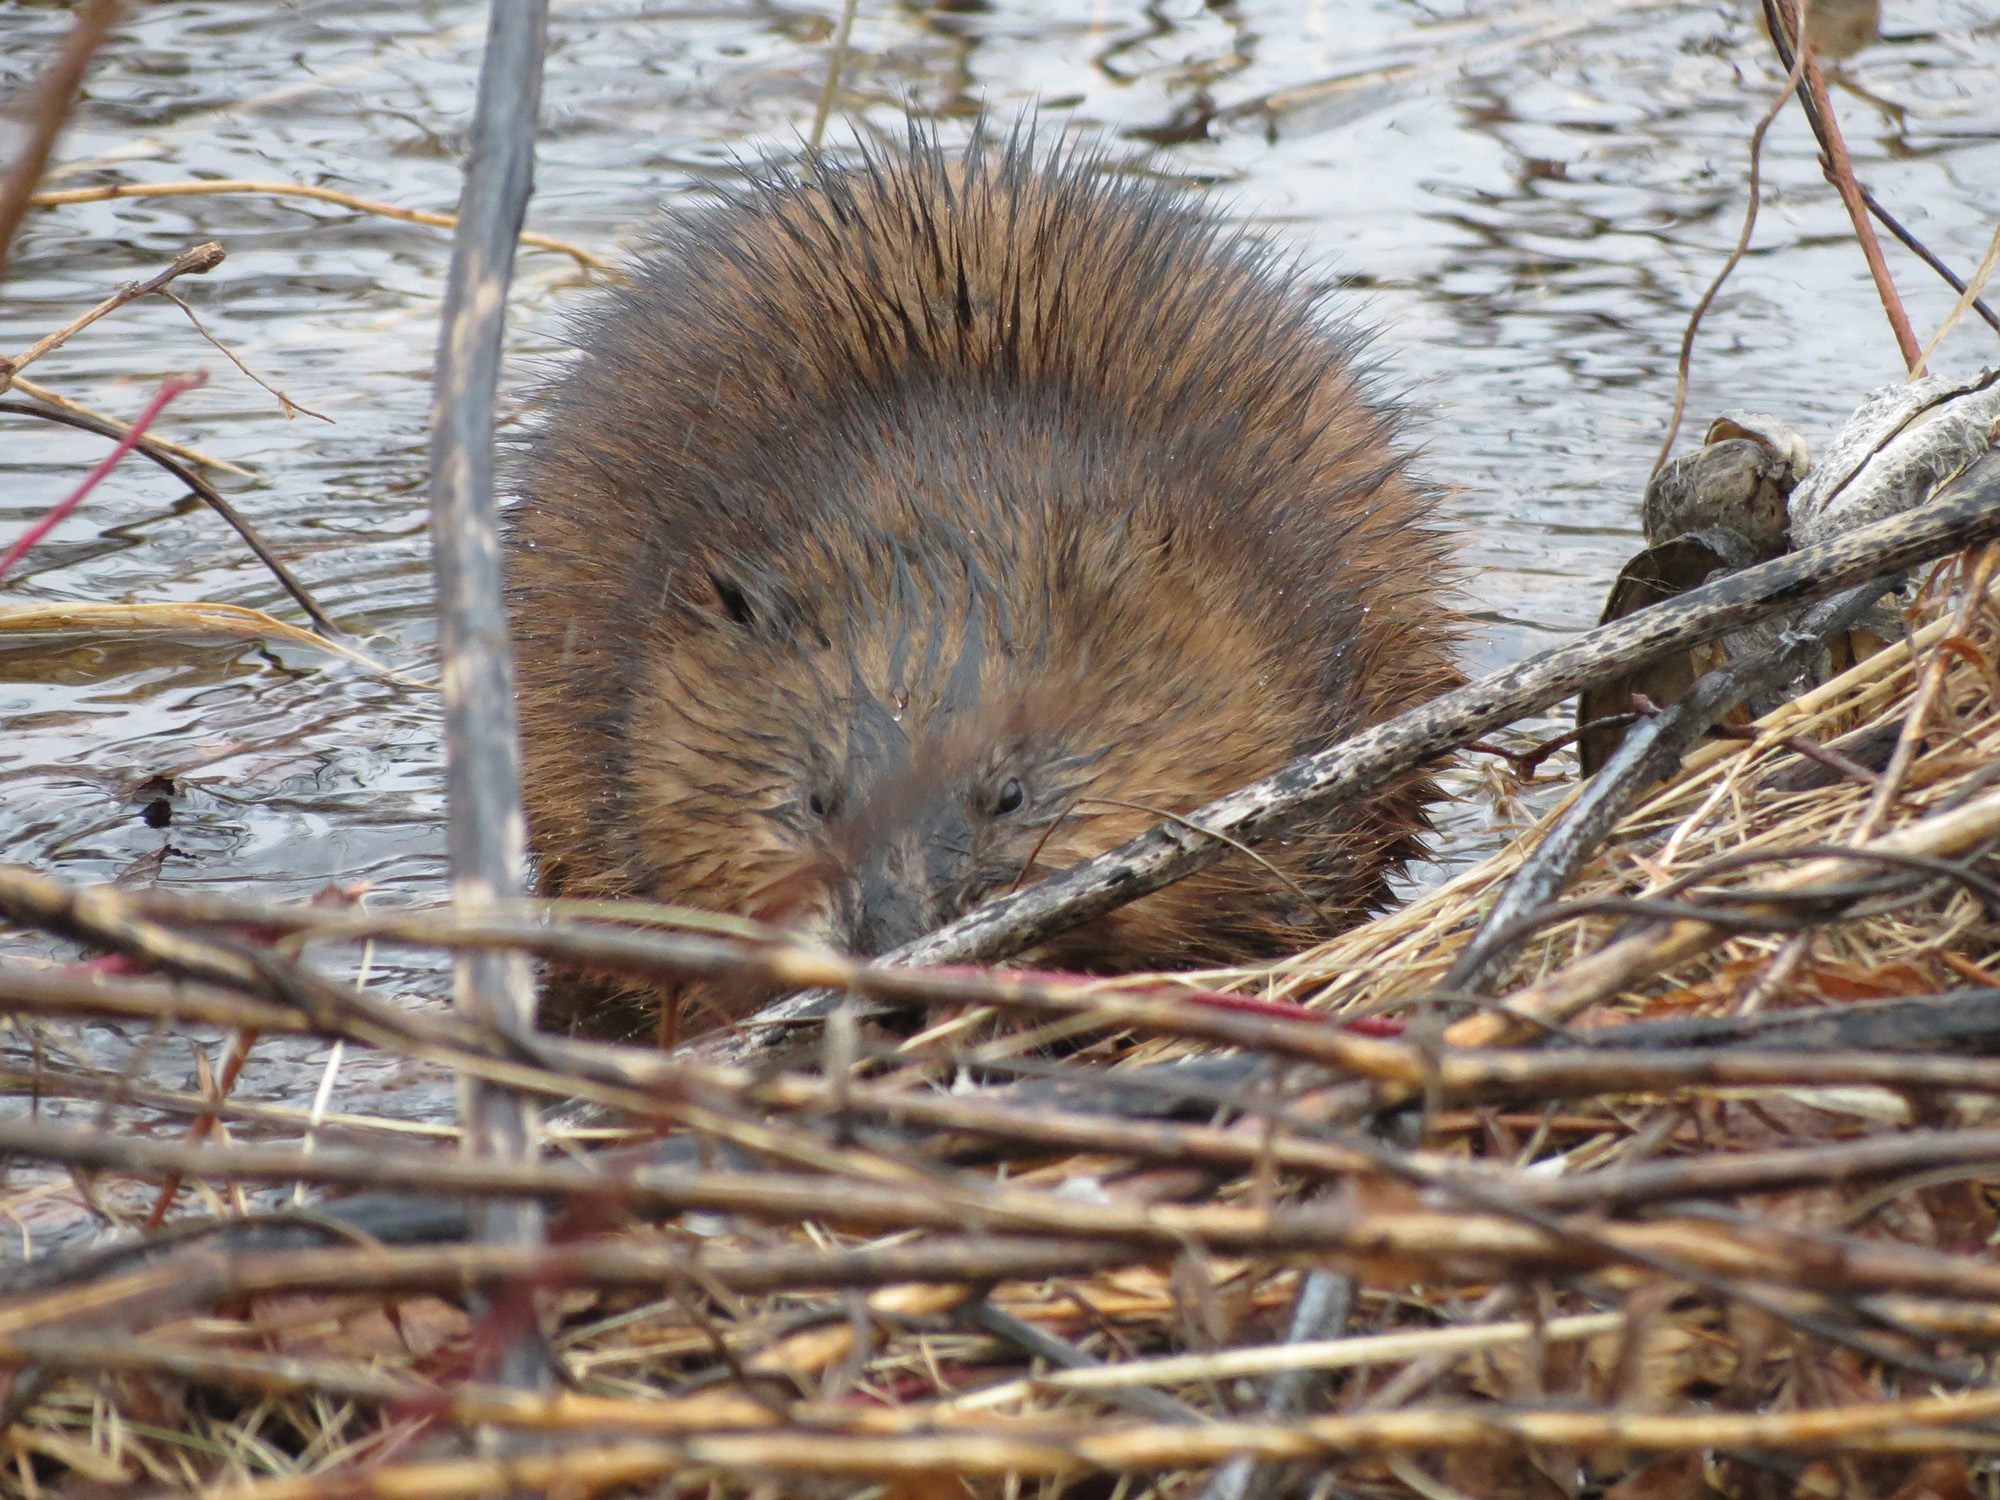 Beavers are the second largest rodent in the world, and their teeth never stop growing, which makes their unpopular gnawing upon trees a biological necessity for survival. A national animal of Canada, once they were heavily hunted for food, fur and pelts, but with the decrease in hunting their population has increased.